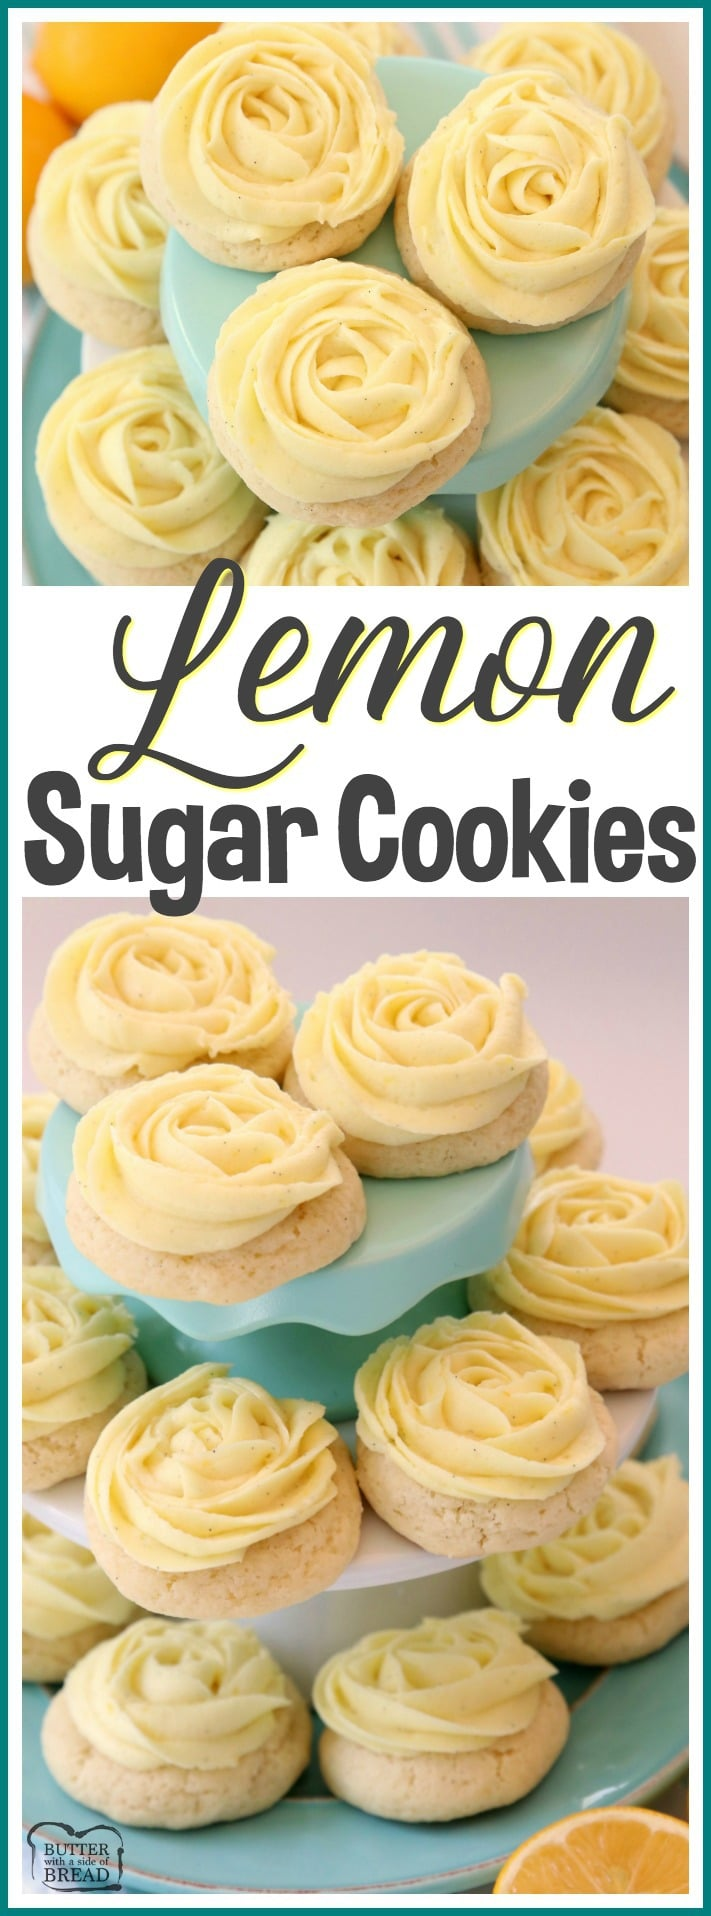 Lemon Sugar Cookies made with fresh lemon juice and zest in a soft sugar cookie dough and topped with a bright lemon buttercream frosting. Lemon Sugar Cookies are piped with a super simple rosette so they taste incredible and they're pretty too! No rolling and chilling necessary- just scoop, bake, cool and frost. Easy Lemon Sugar Cookie recipe from Butter With A Side of Bread